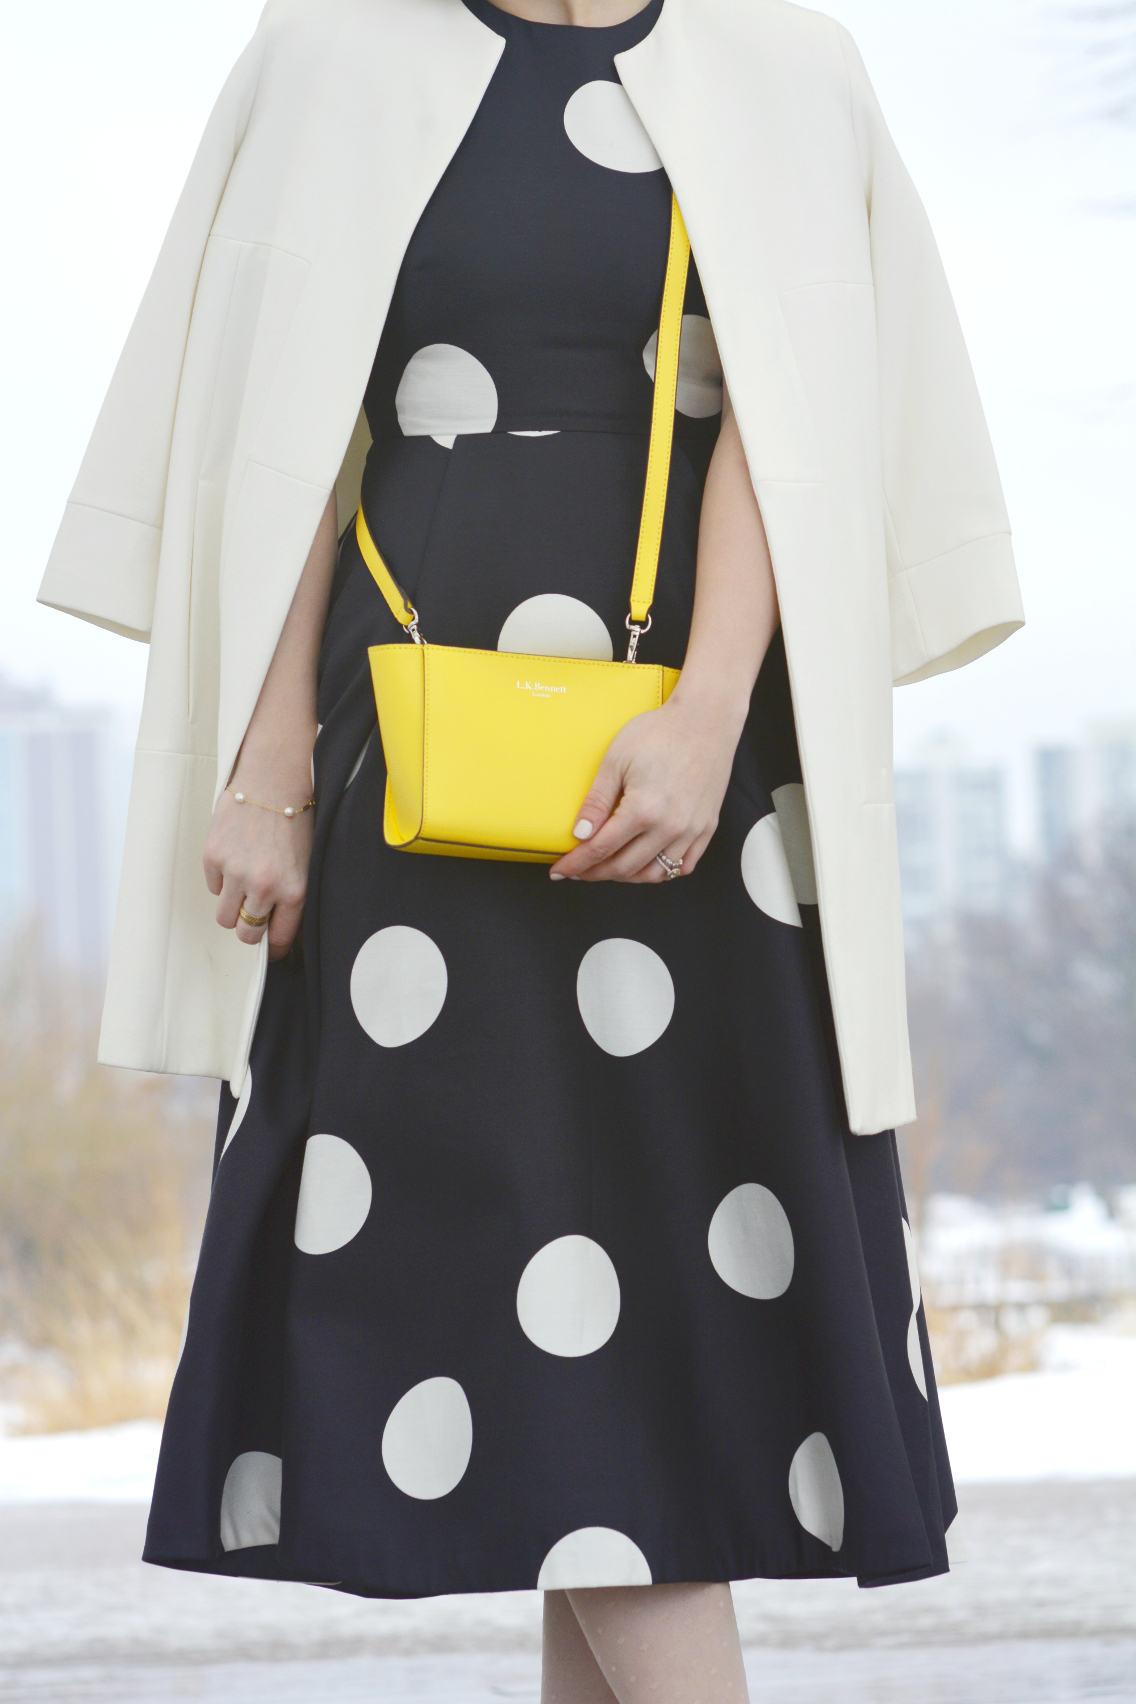 LK Bennett Polka Dot Midi Dress Spring 2015 14